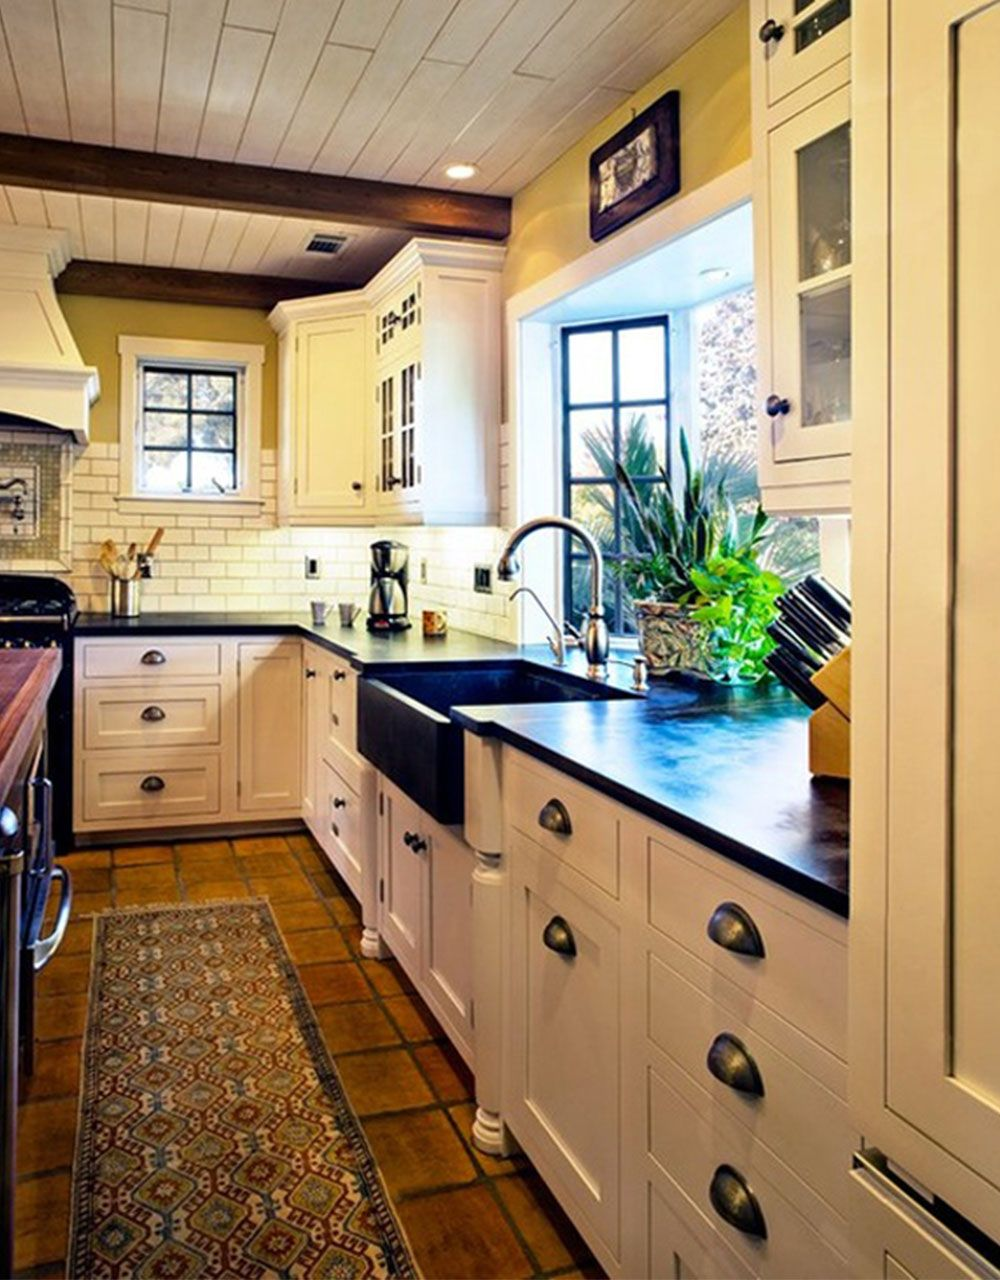 Implementing the newest kitchen trends 2015 | Kitchen Cabinets ... on countertop trends 2014, backsplash kitchen trends 2014, kitchen ideas 2014, kitchen colors for 2014, home decor trends 2014, oak kitchen trends 2014, current kitchen trends 2014, photography trends 2014, kitchen color trends, kitchen backsplashes 2014, kitchen appliance color forecast, kitchen design ideas, landscaping trends 2014, kitchen pottery barn 2014, online shopping trends 2014, gel nail trends 2014, dining room trends 2014, traditional kitchen trends 2014, kitchen renovations, kitchen remodel,